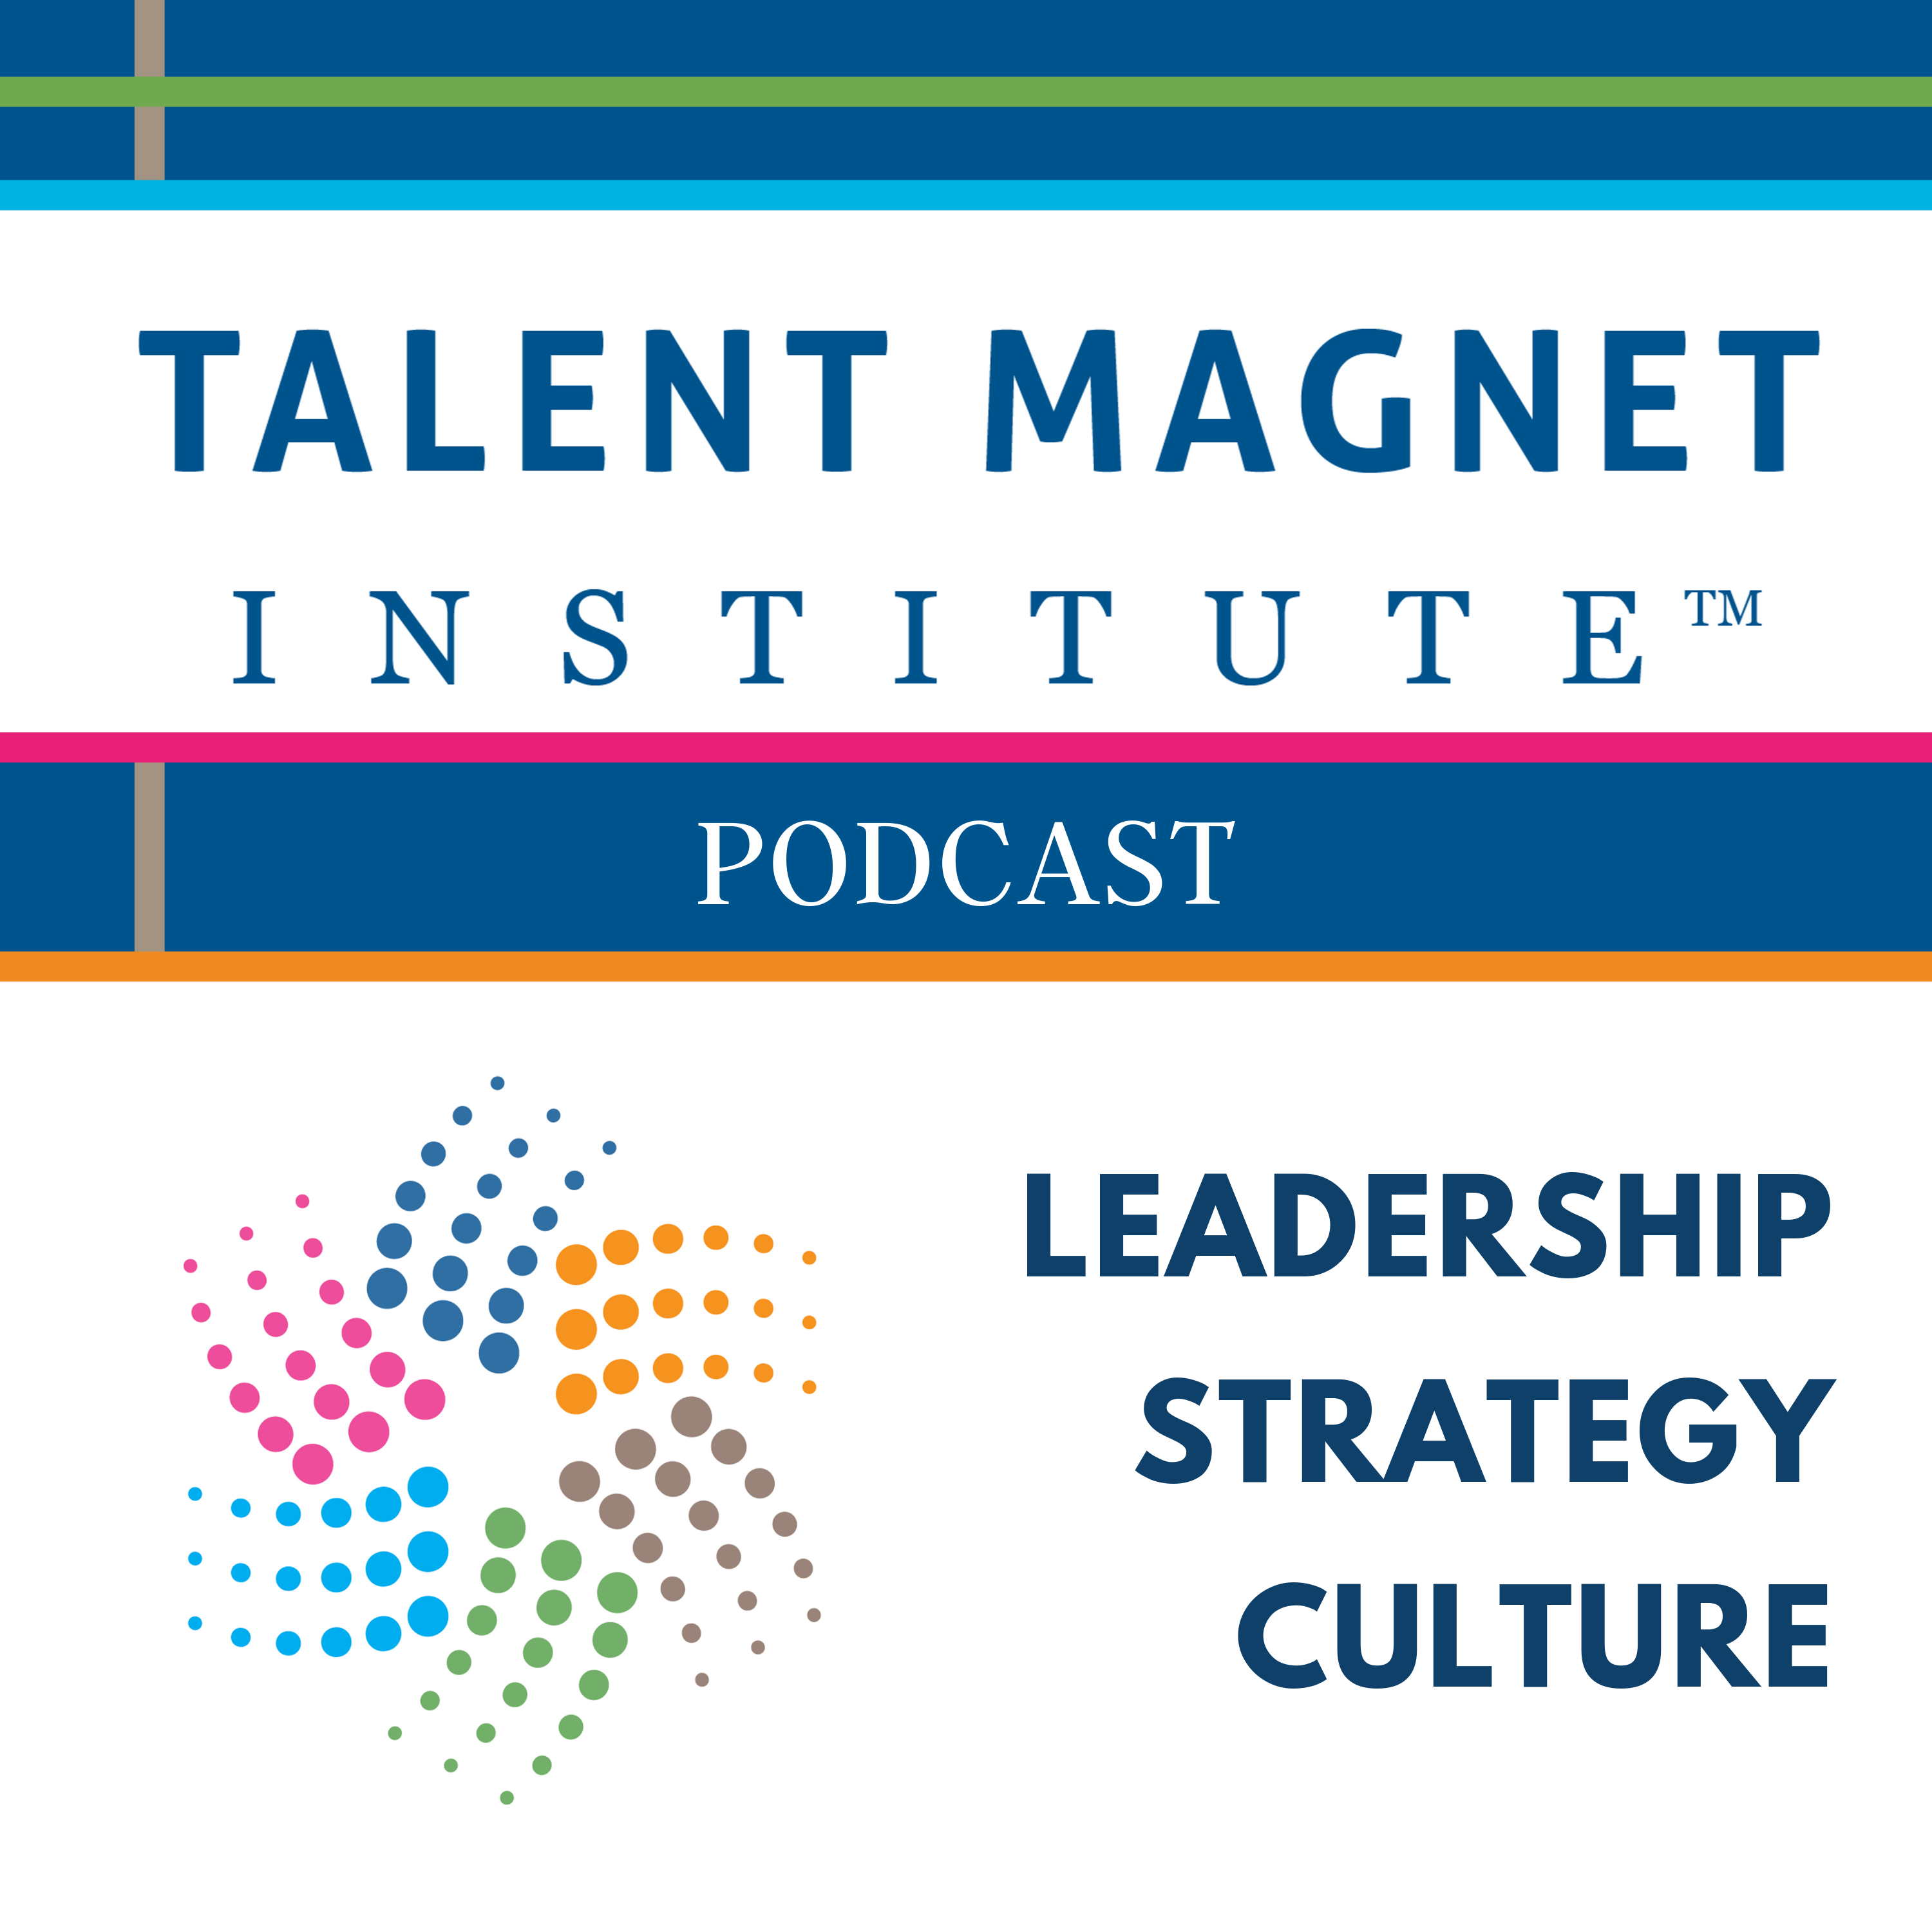 A Personal Conversation About The Vision of Talent Magnet Institute with Mike Sipple Sr.